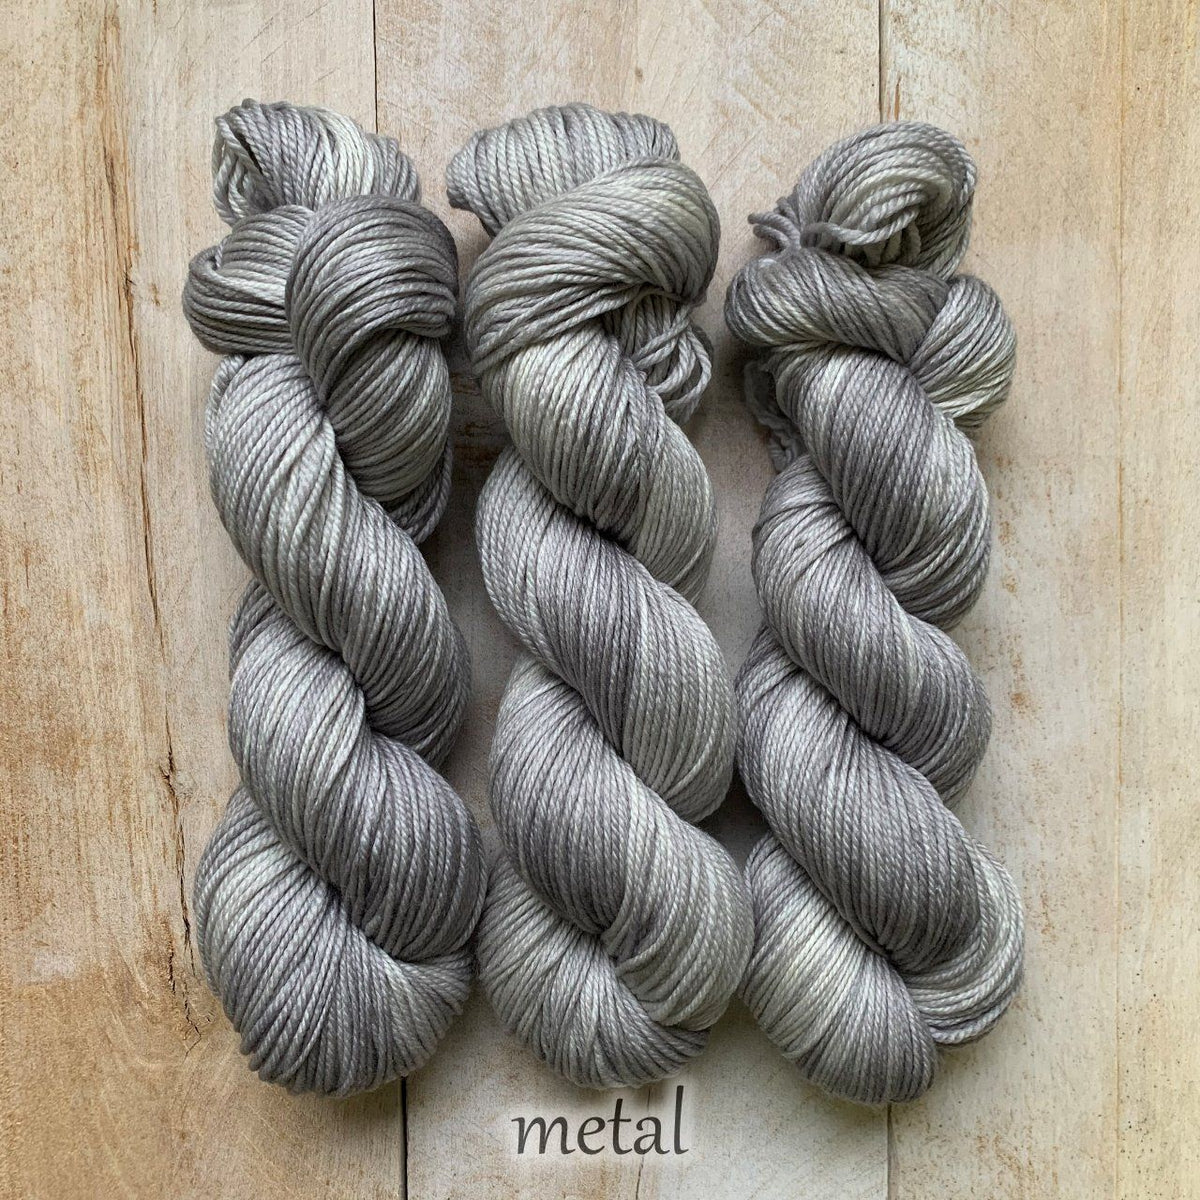 METAL by Louise Robert Design | DK PURE hand-dyed semi-solid yarn